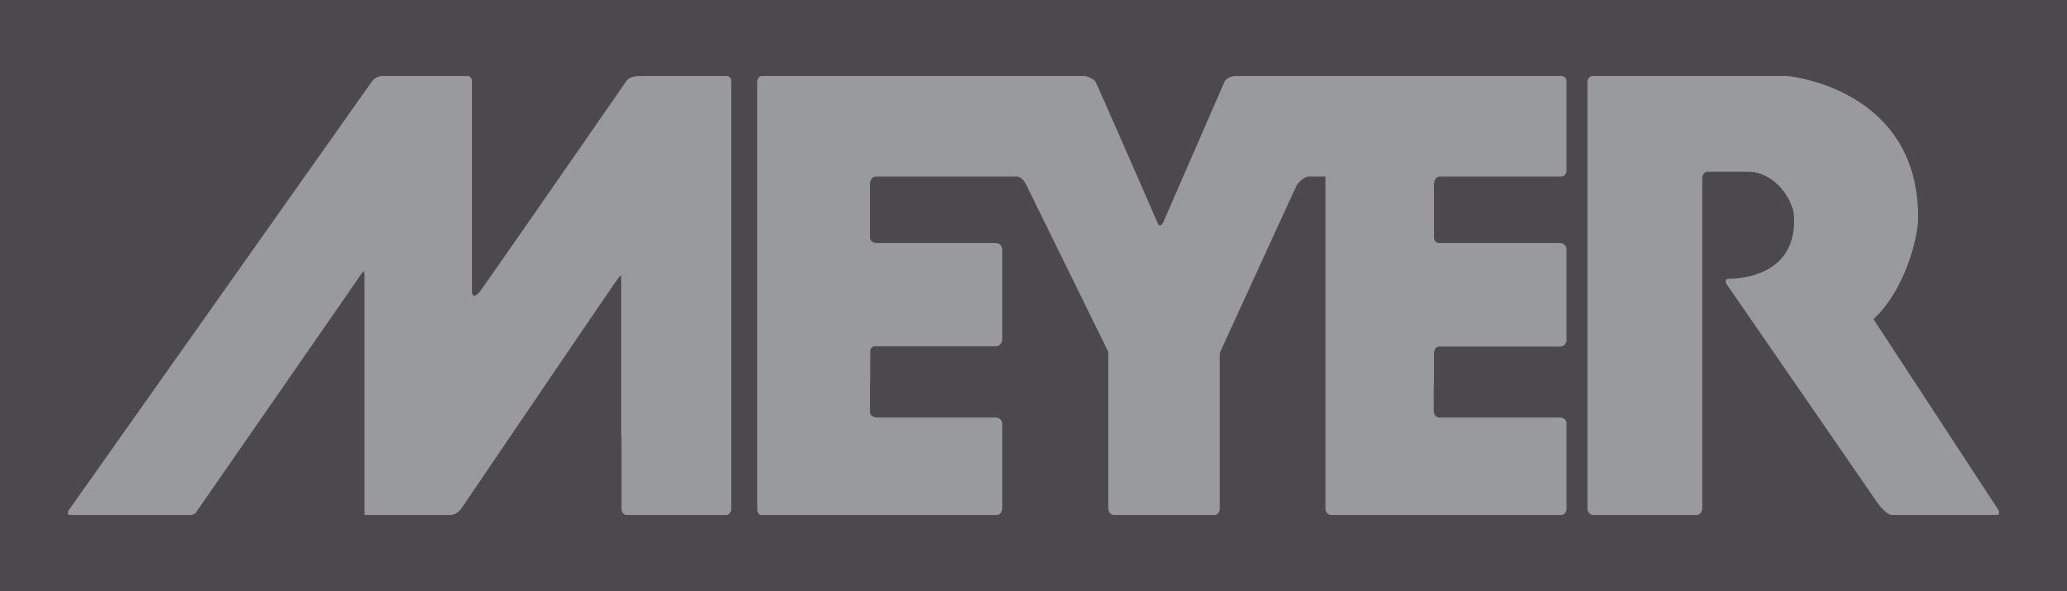 Meyer_Logo_grey_non_.jpg